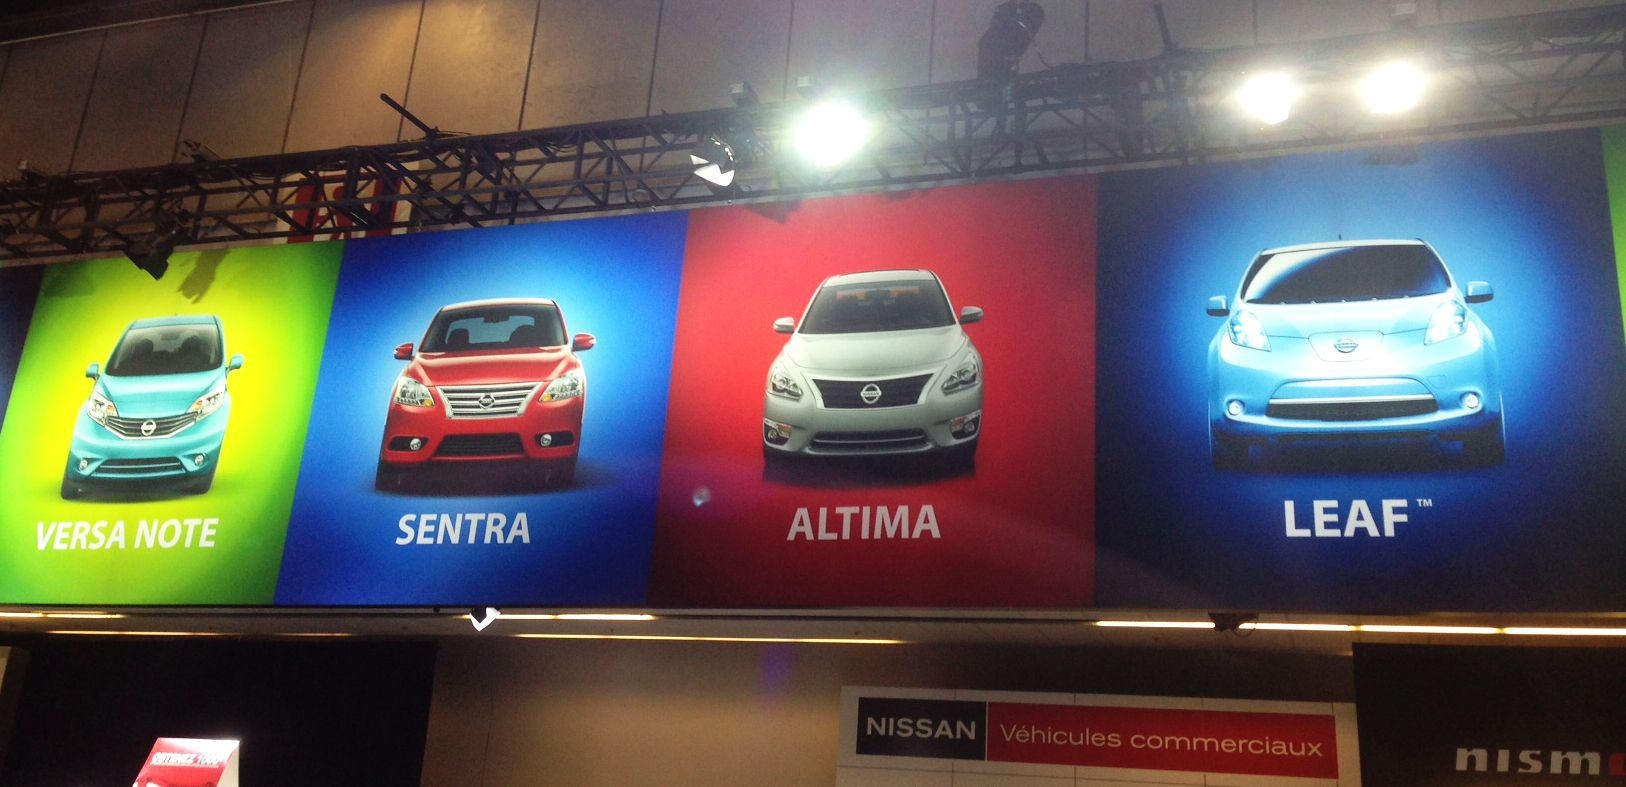 Montreal Auto Show Nissan banner